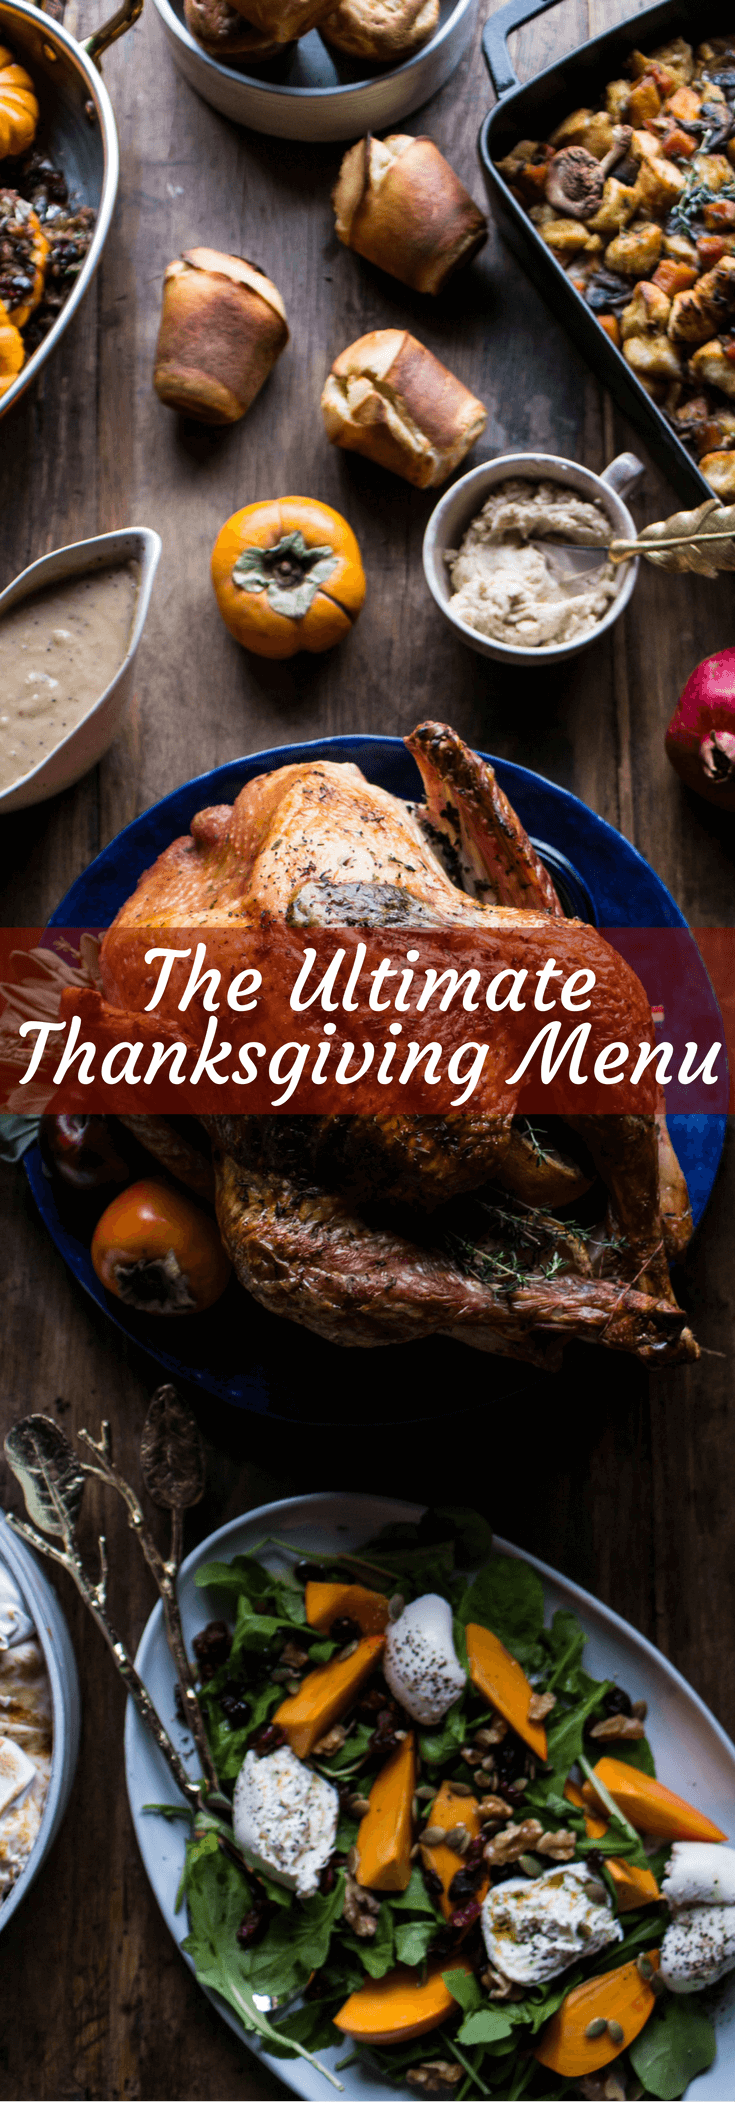 The Ultimate Thanksgiving Menu | halfbakedharvest.com @hbharvest